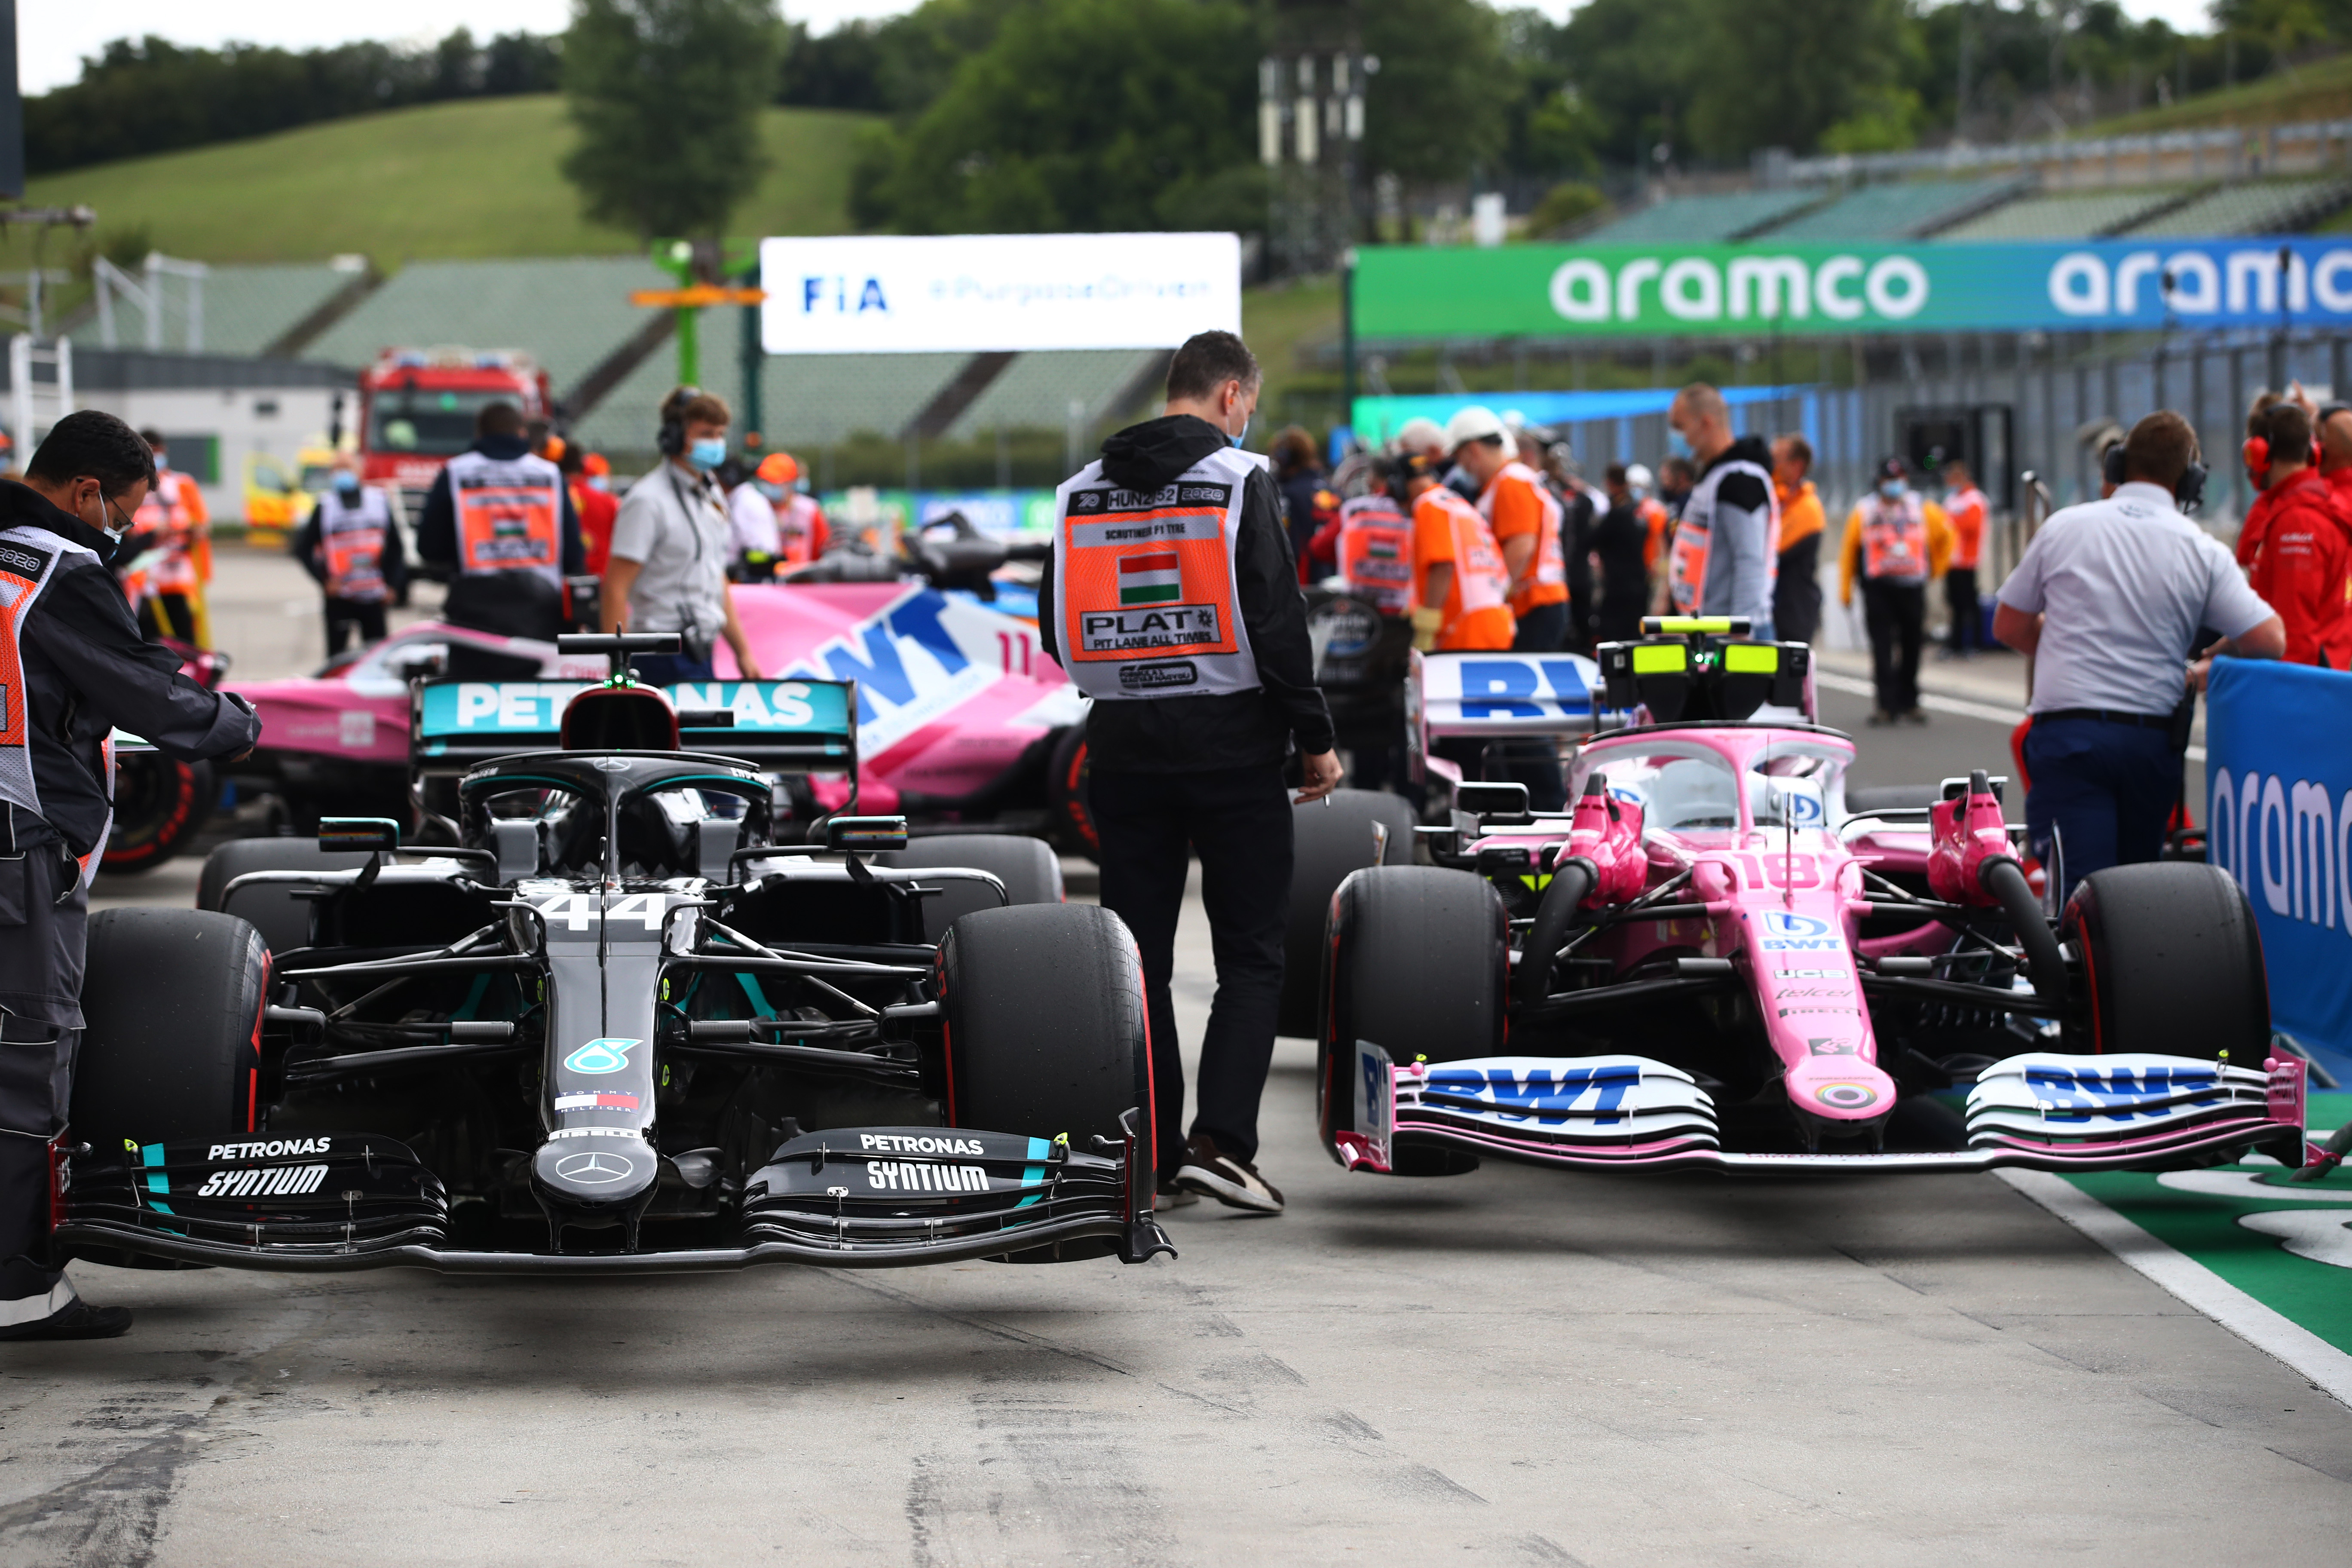 Mercedes Racing Point Hungarian Grand Prix parc ferme 2020